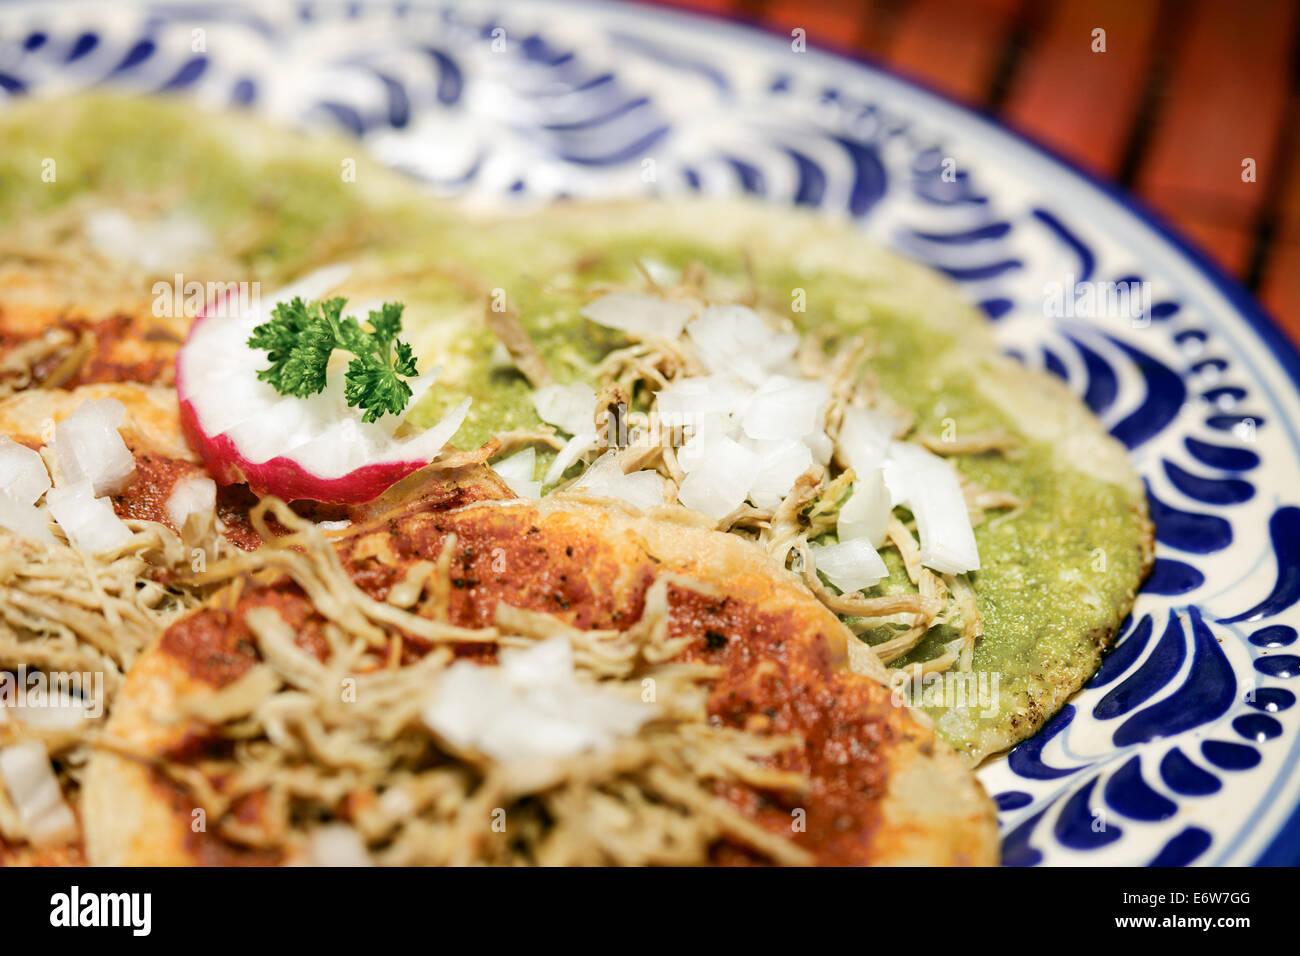 Green and red chalupas with shredded beef, a specialty in Puebla, Mexico. - Stock Image